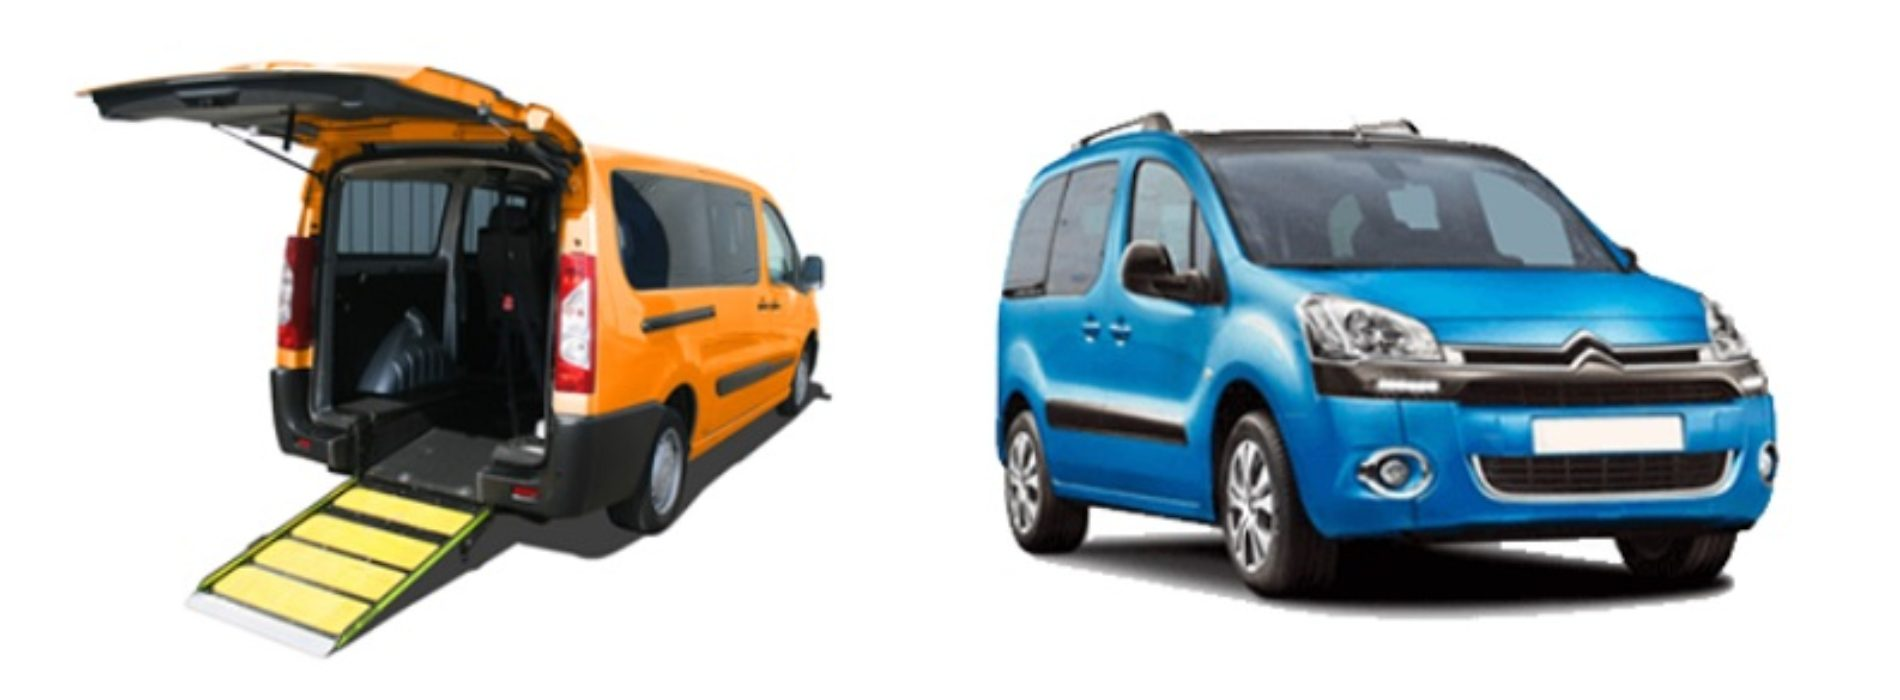 Wheelchair accessible vehicles: all you need to know to buy the best